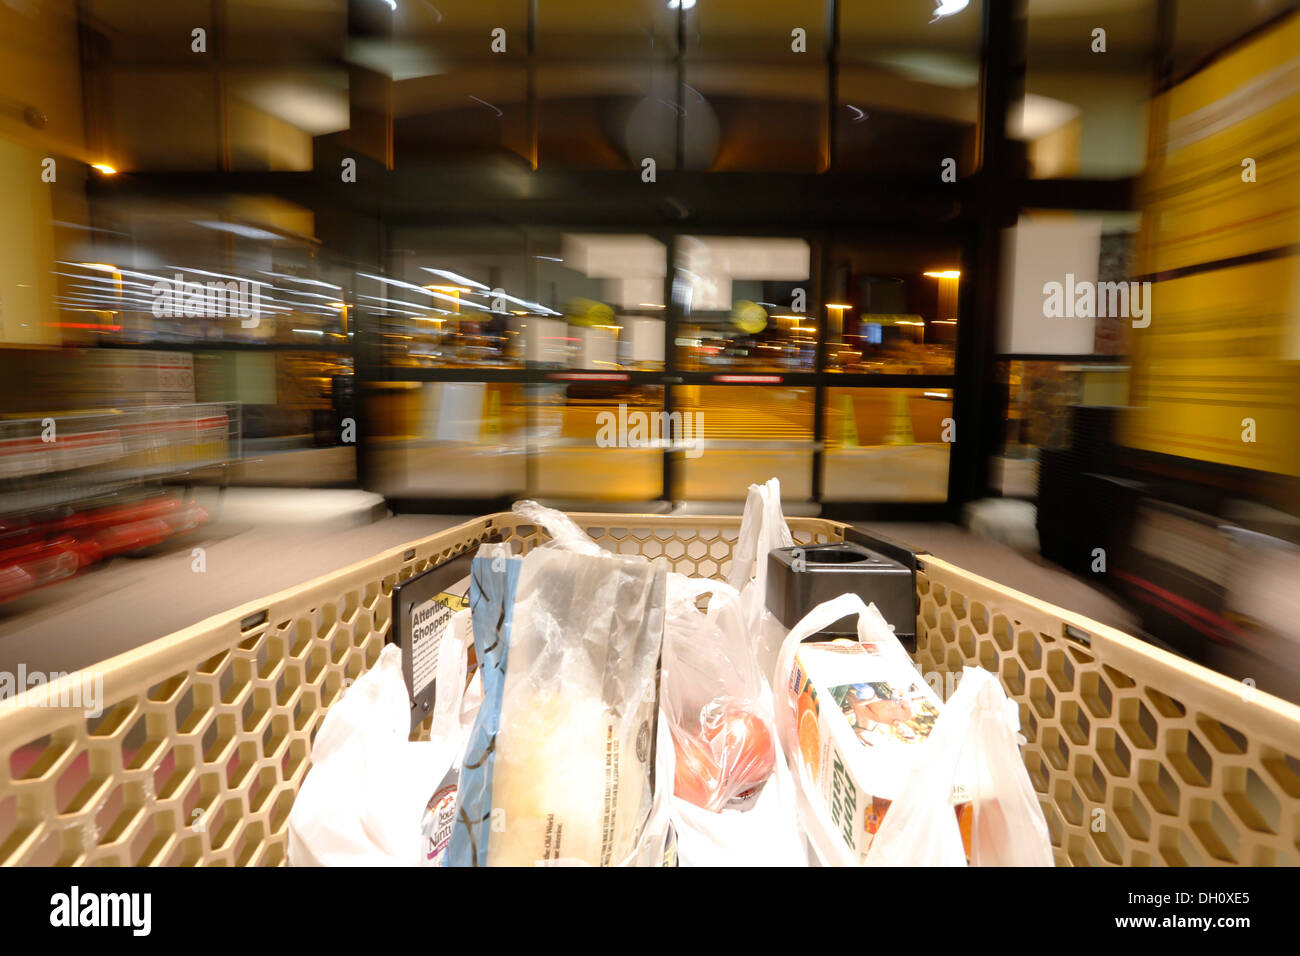 On the way to the exit with shopping bags, shopping at the supermarket, USA - Stock Image